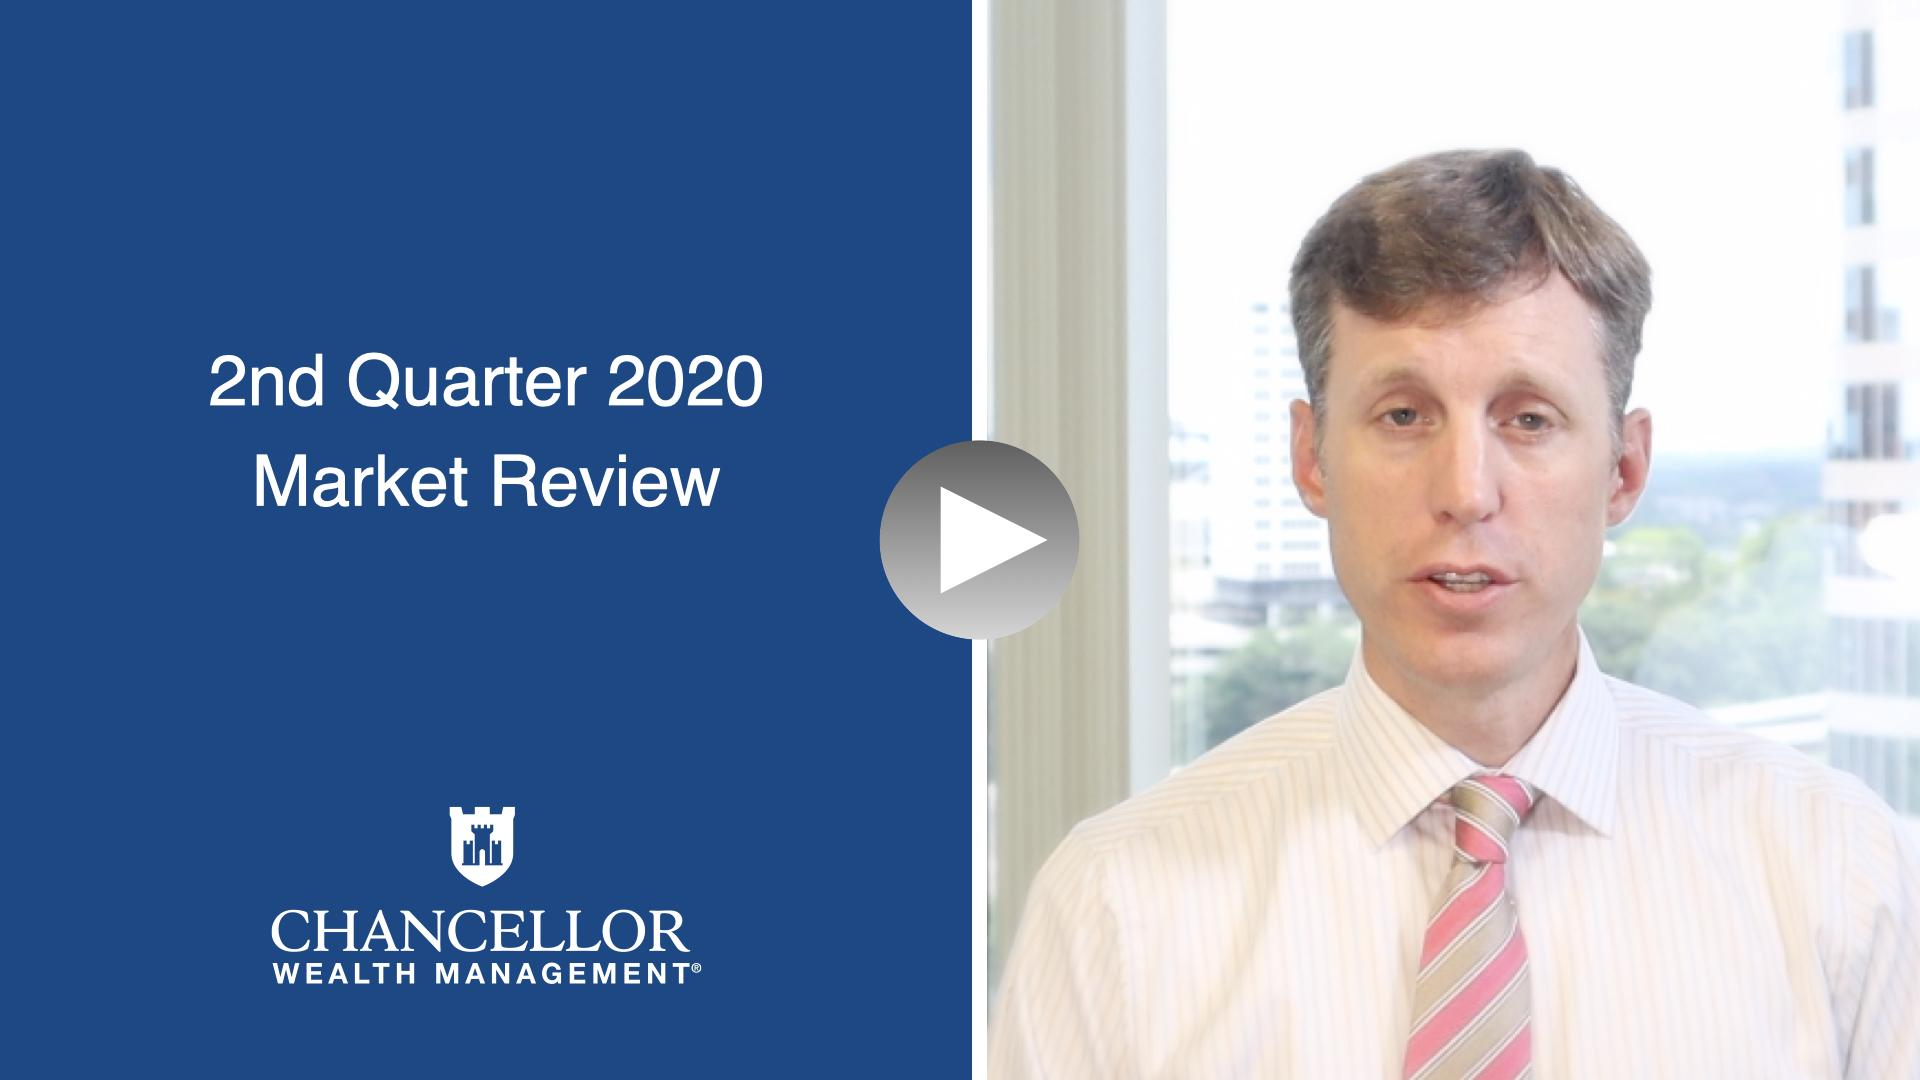 Market Review 2Q 2020 Thumbnail